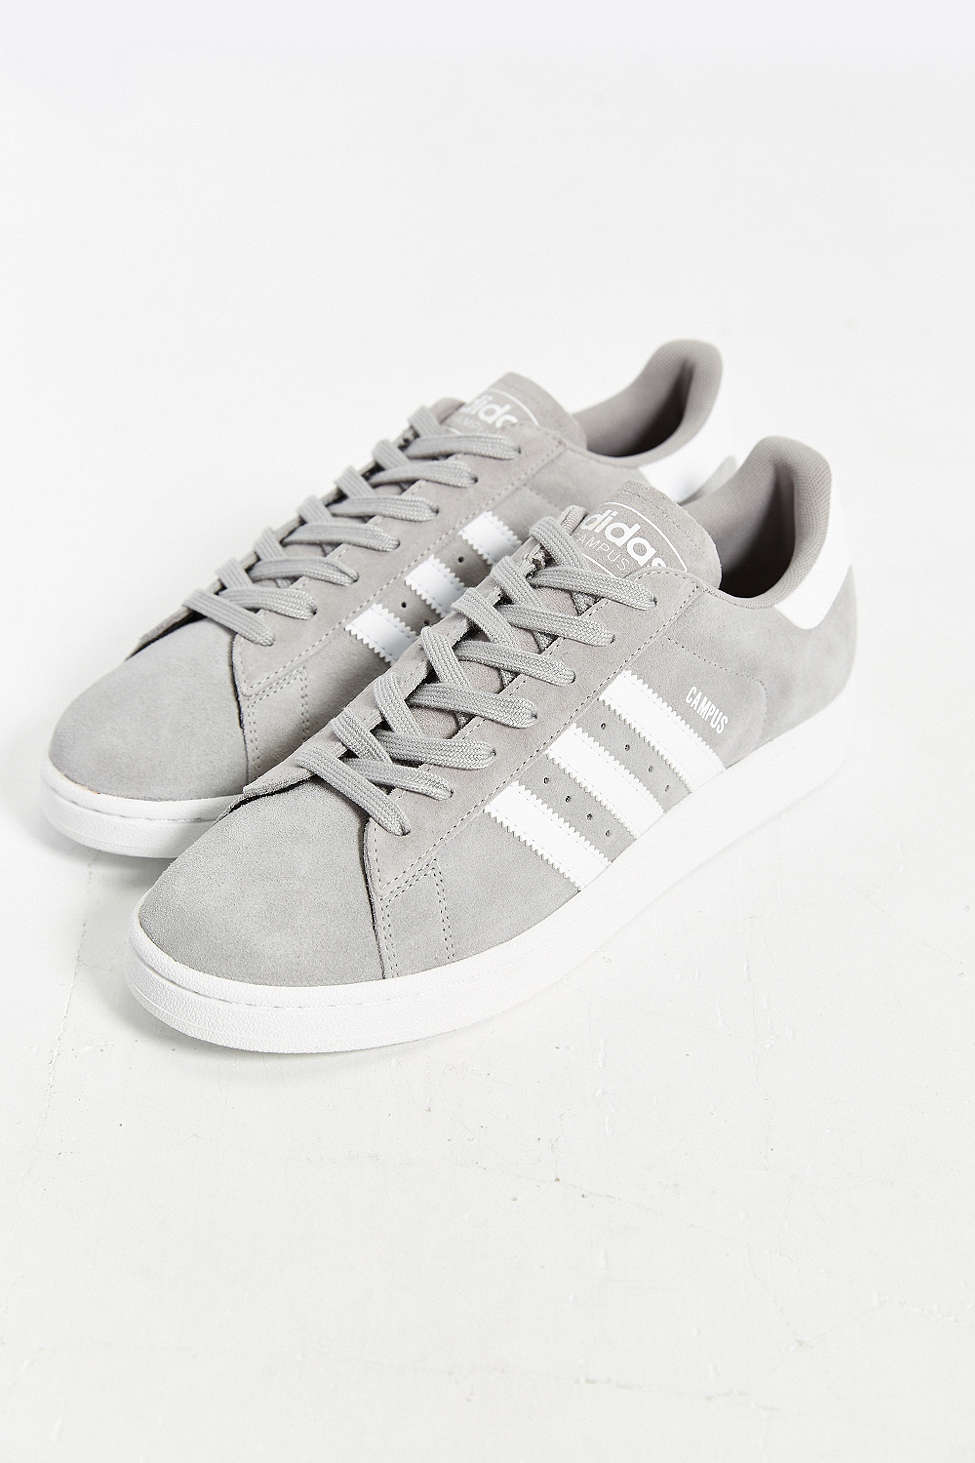 Adidas Campus 2 Sneakers / Shop Here